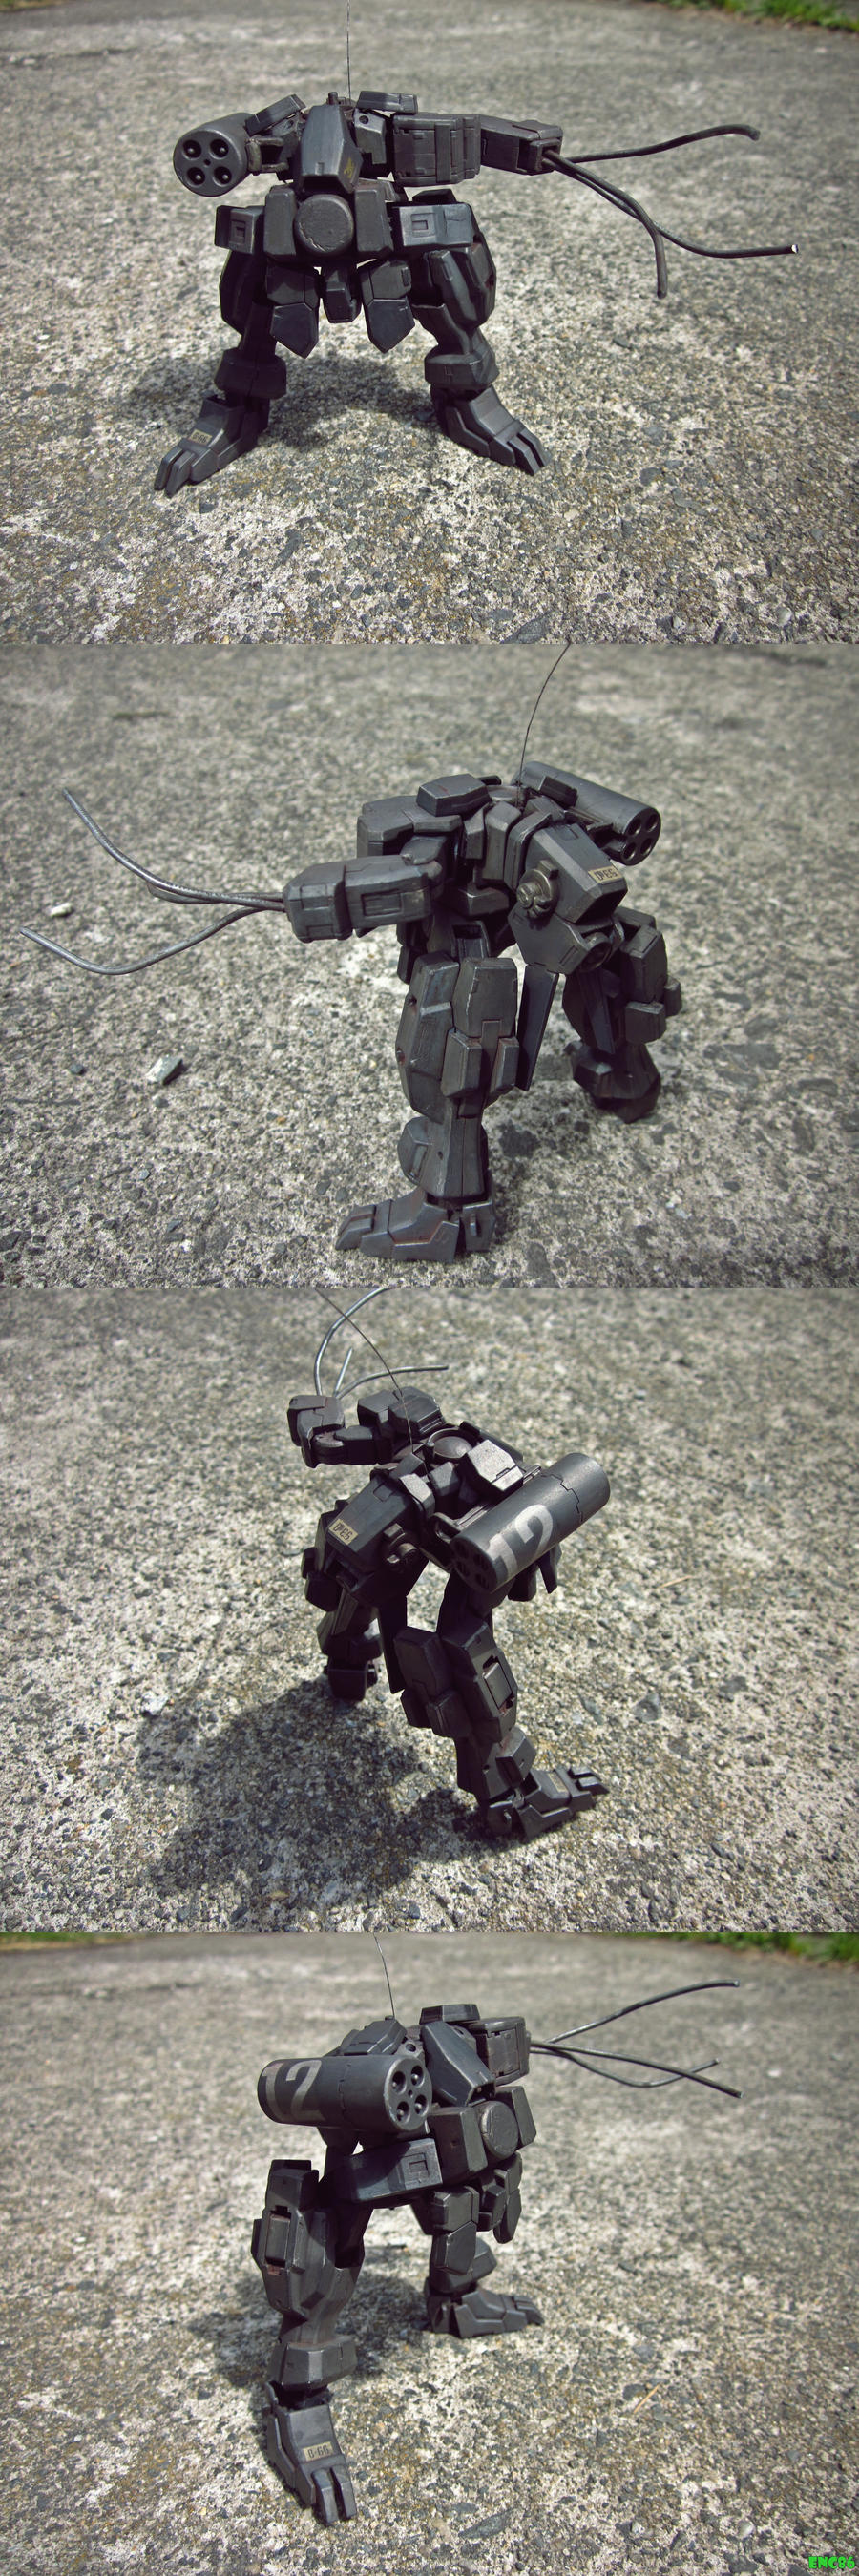 Kitbashed Mech by enc86